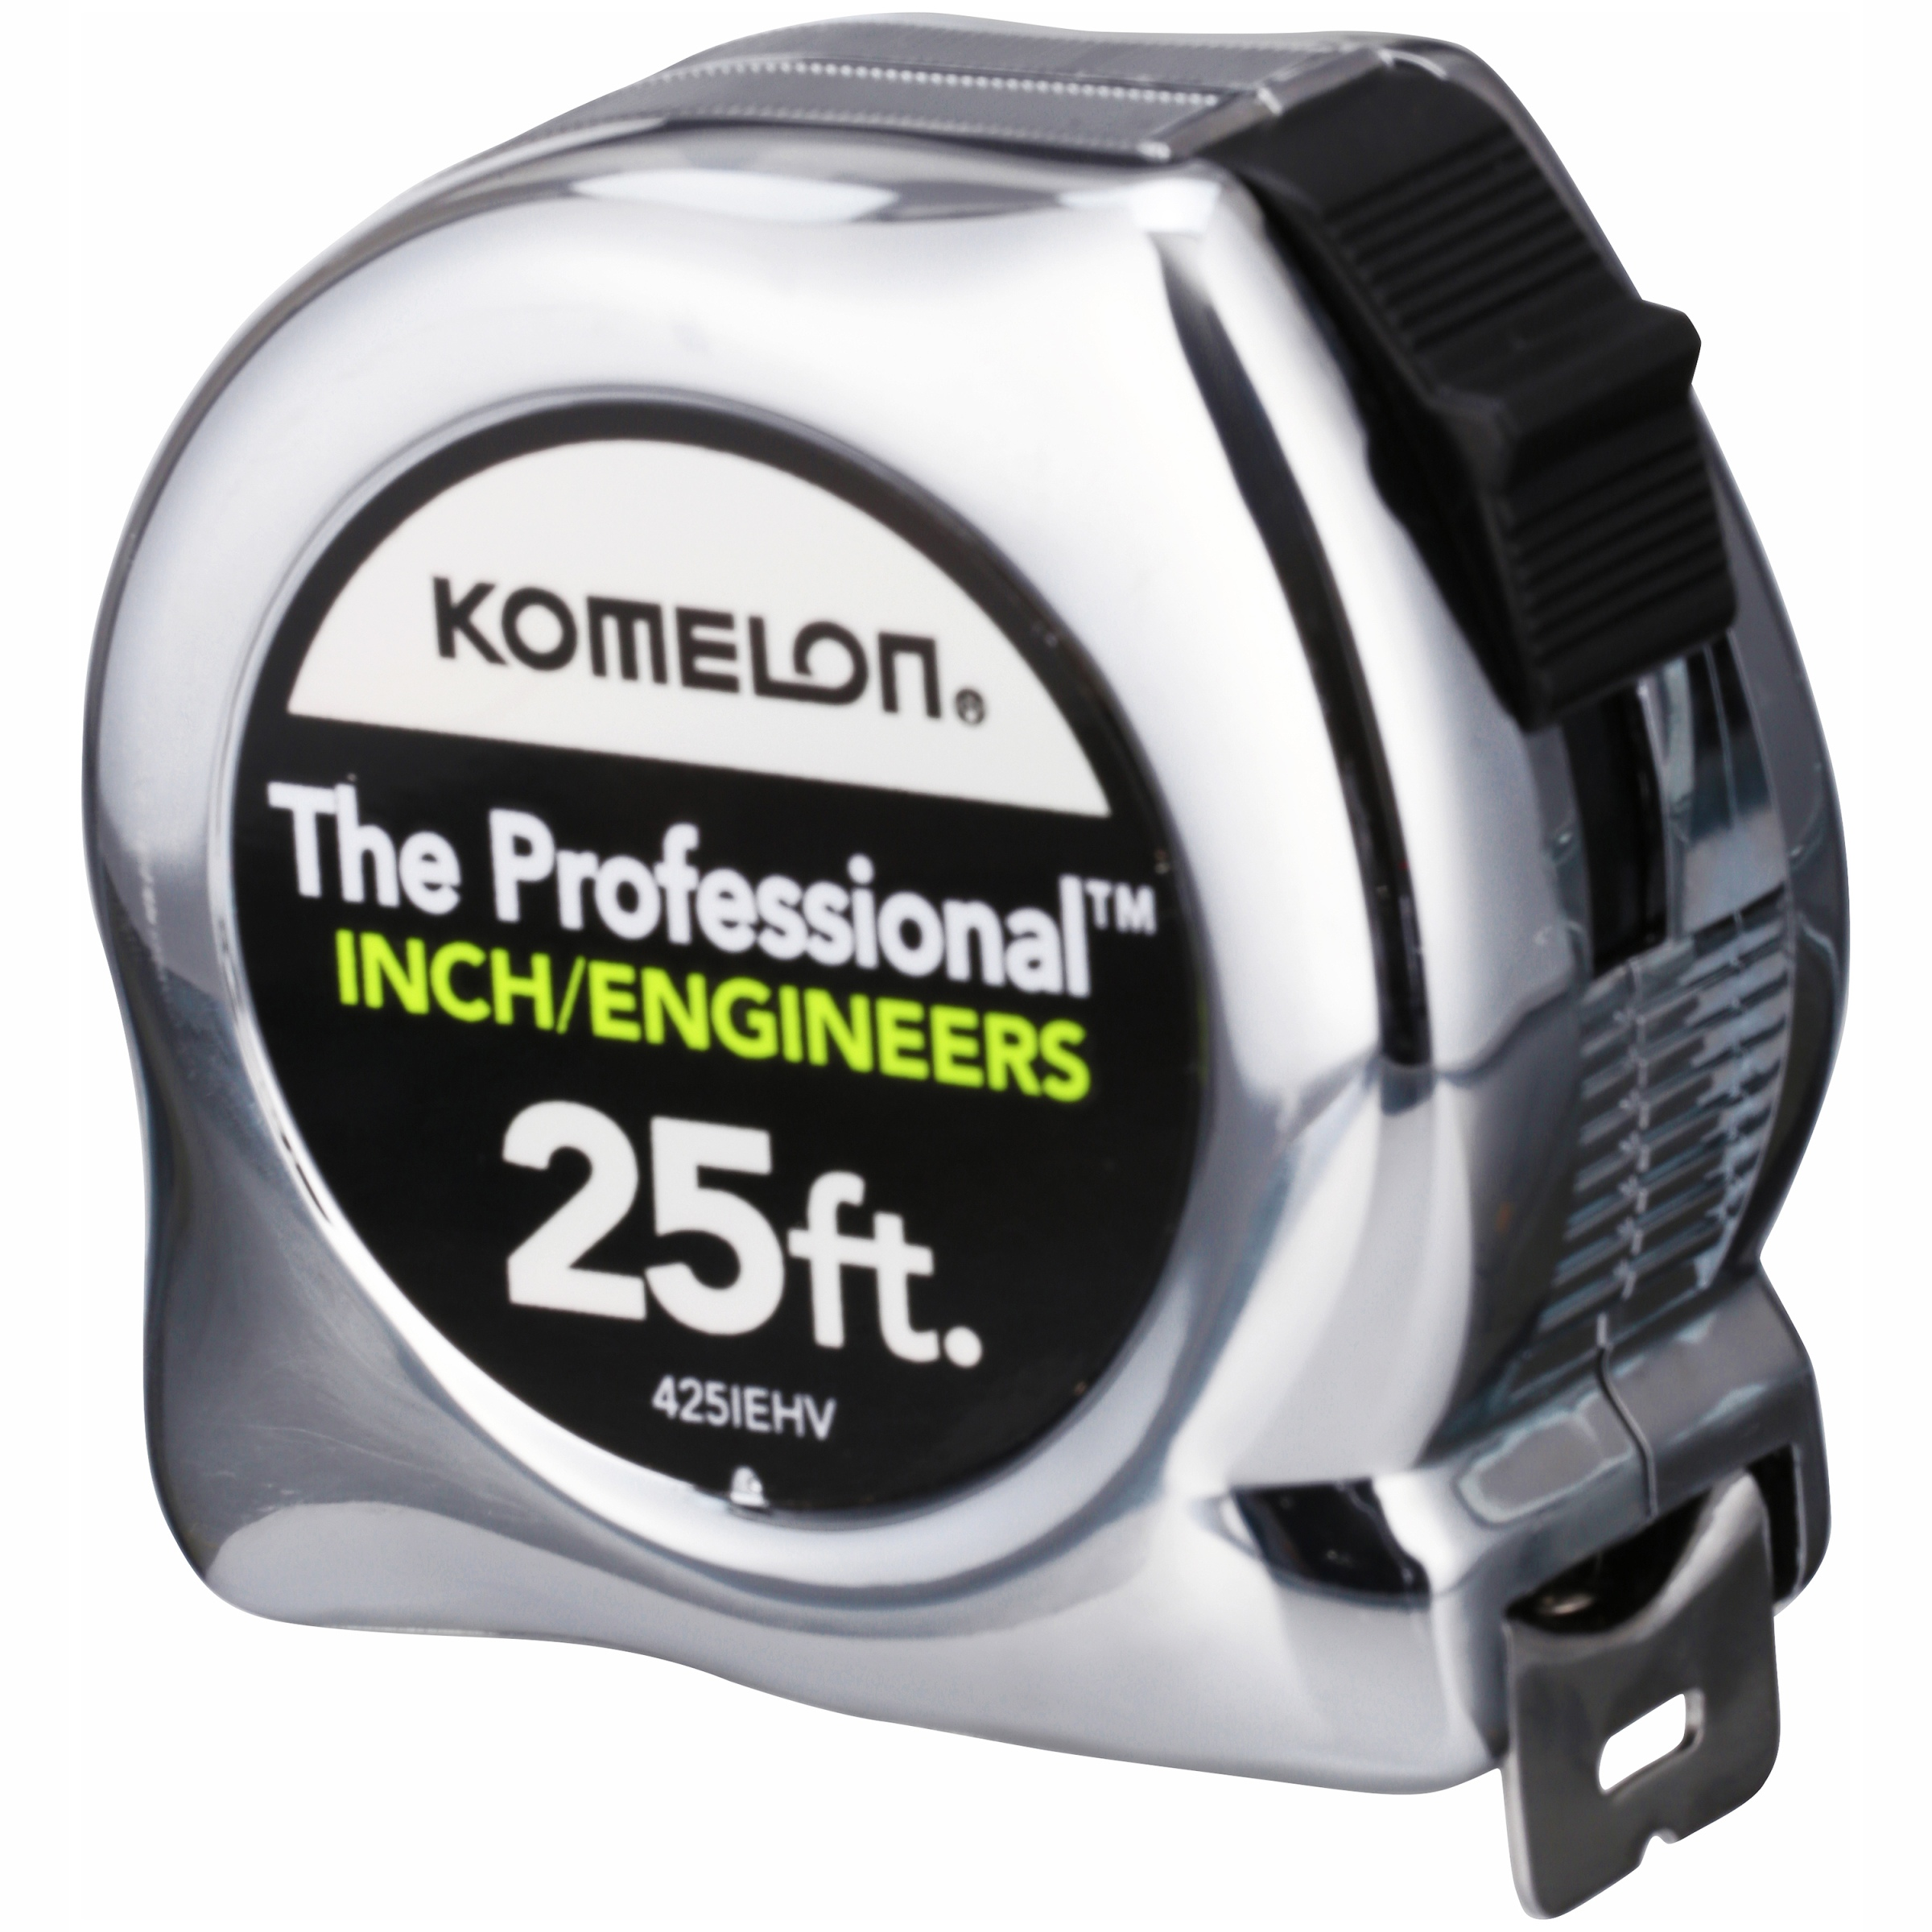 Komelon® The Professional™ Premium 25 ft. Tape Measure